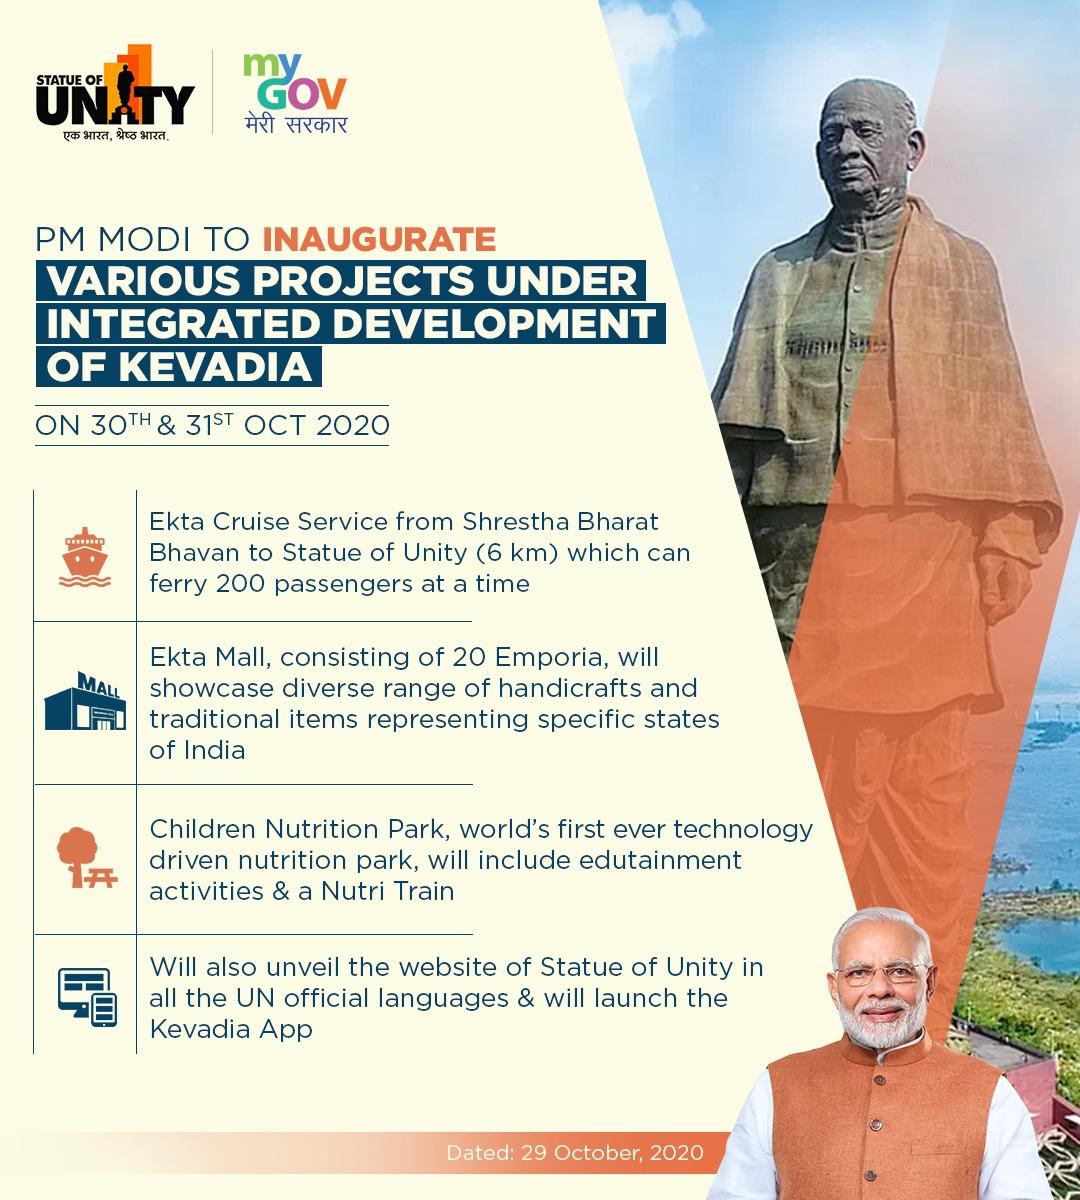 PM @narendramodi to inaugurate various projects under the Integrated Development of Kevadia on 30th and 31st October 2020. Register here to watch the event live: https://t.co/vff9e4jDUq #TransformingIndia https://t.co/AEqxWBZ8Yd